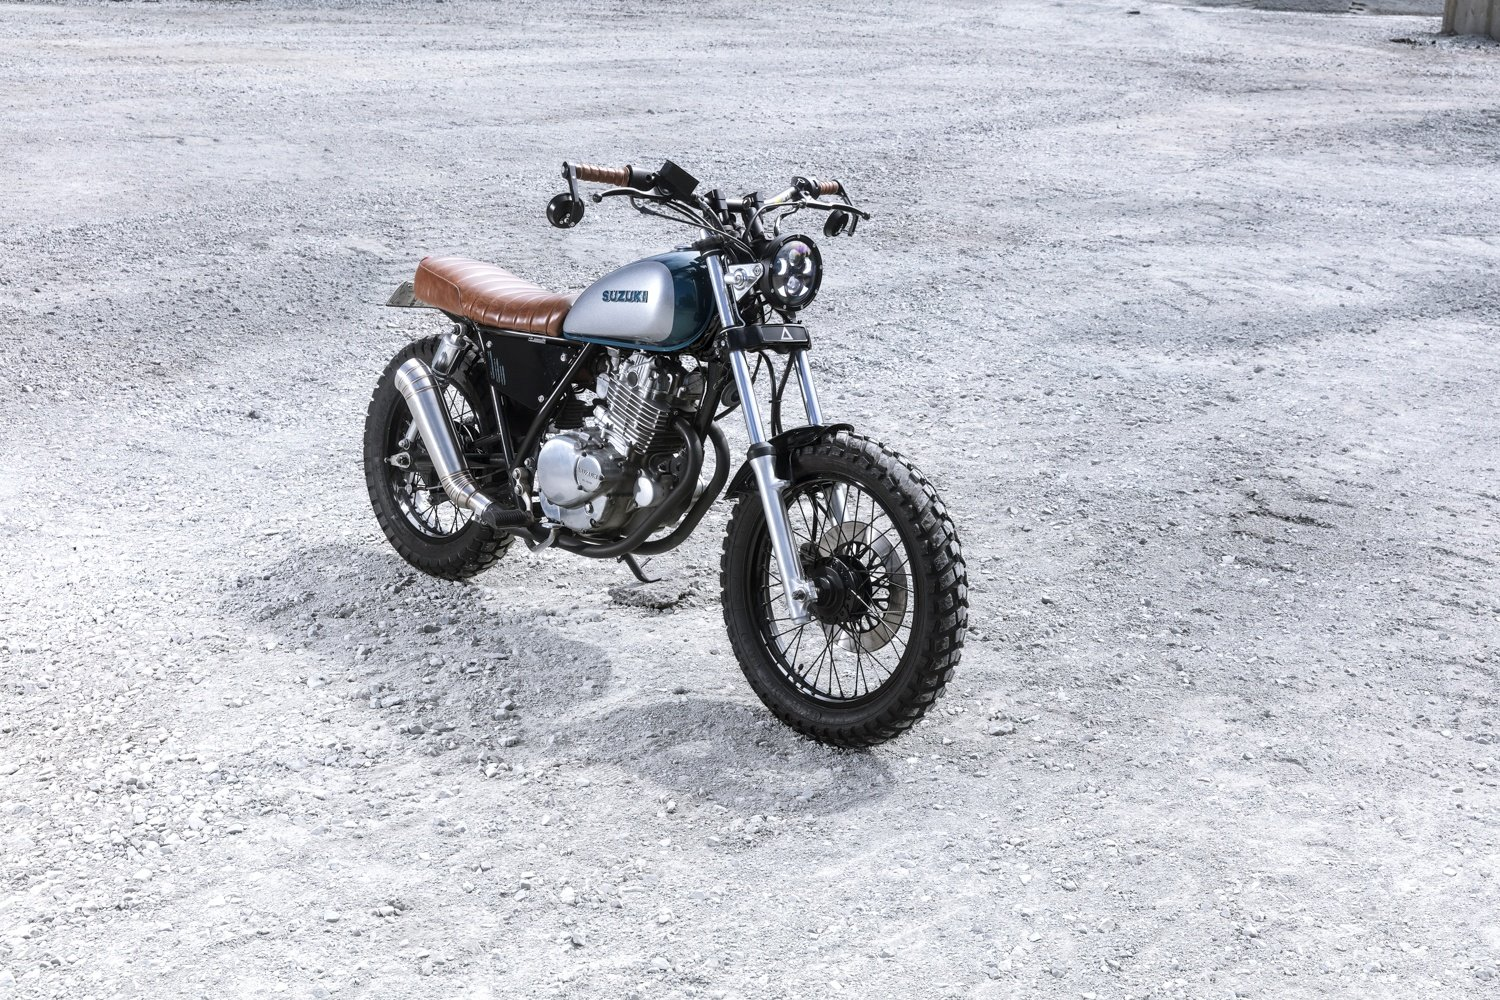 How to Build a Scrambler - A Guide on What it Takes to Build Your Own